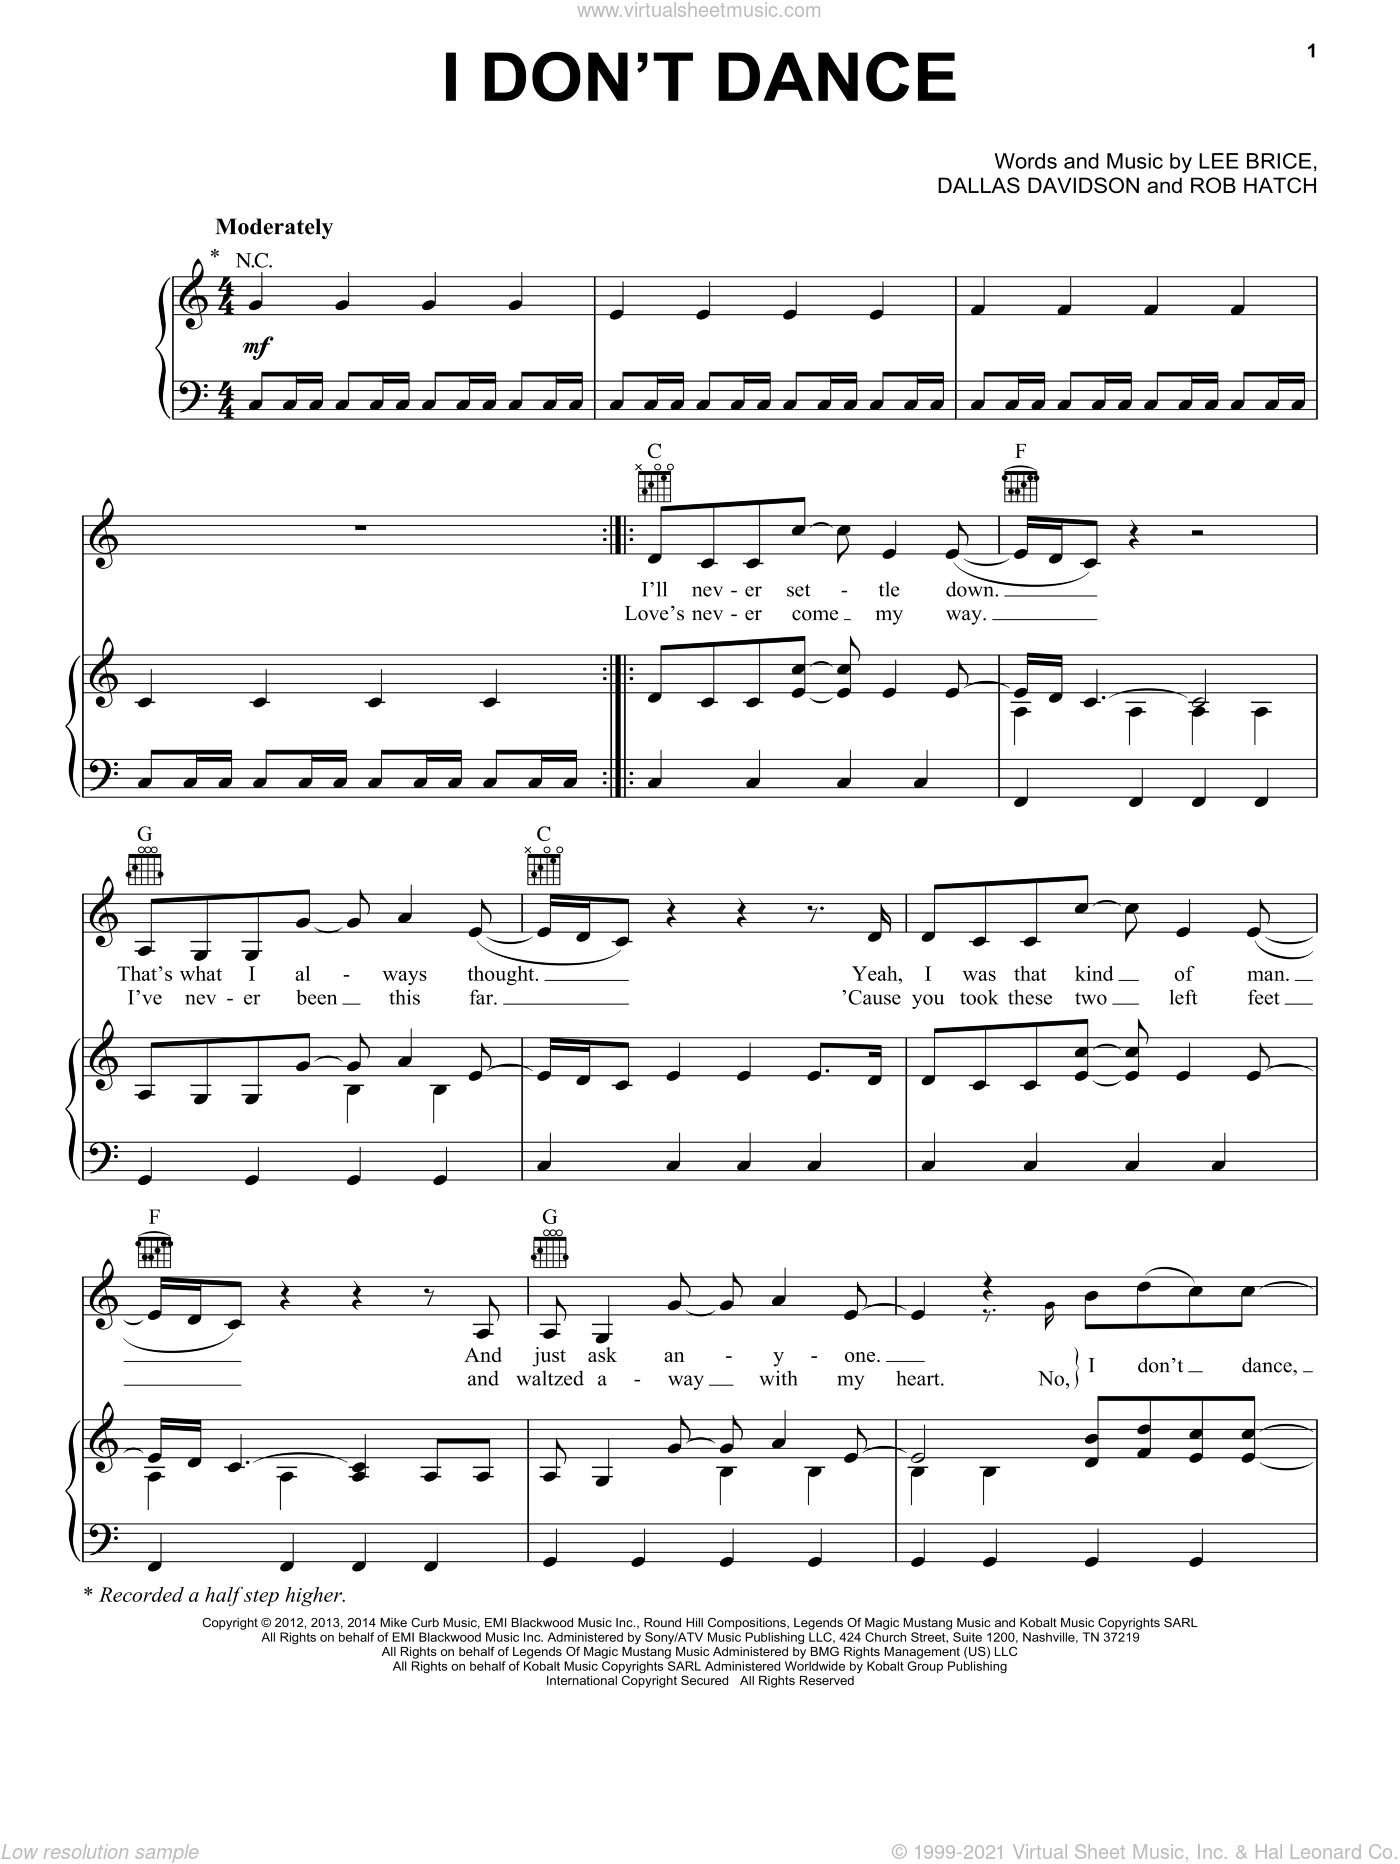 I Don't Dance sheet music for voice, piano or guitar by Rob Hatch, Dallas Davidson and Lee Brice. Score Image Preview.